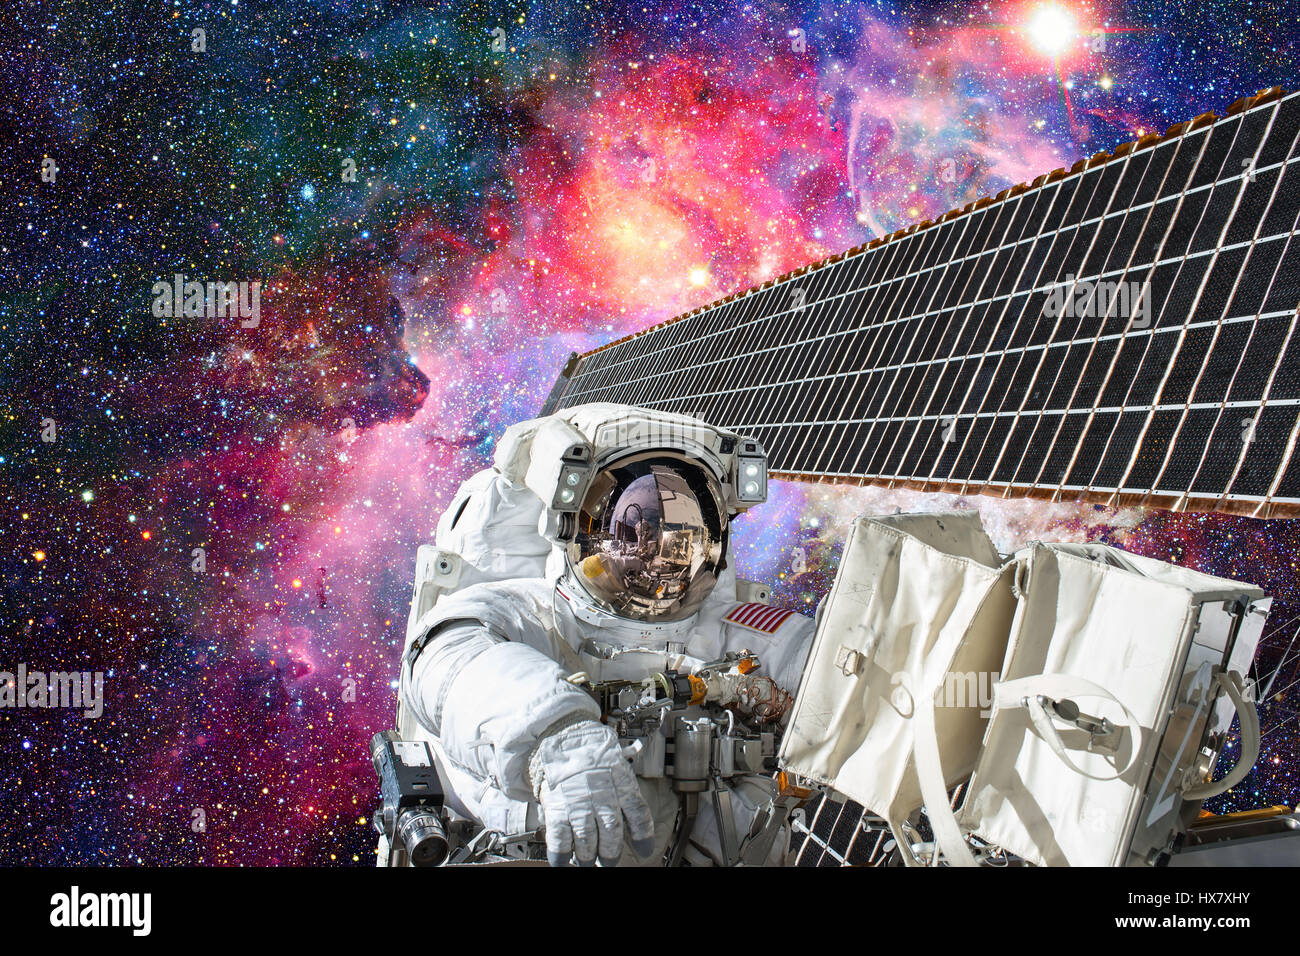 Cosmonaut works outside the International Space Station - Stock Image